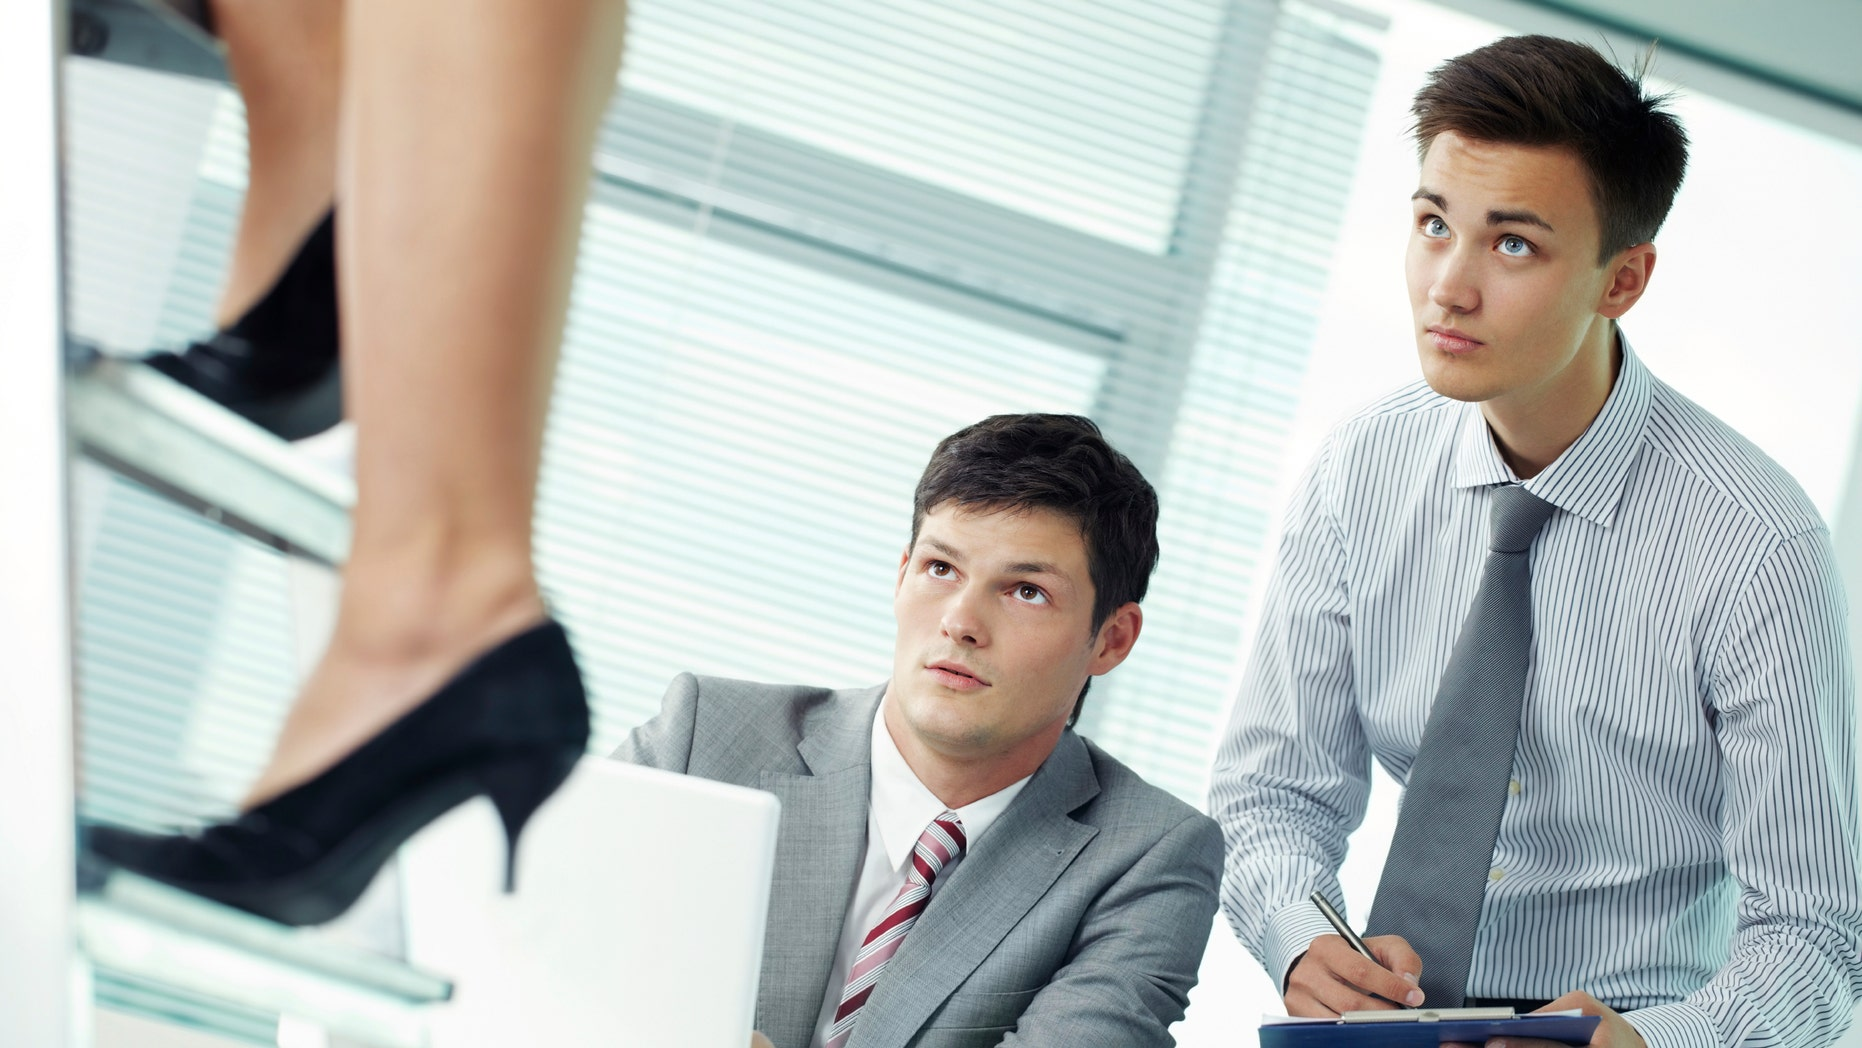 Two shocked managers looking at legs of their female colleague